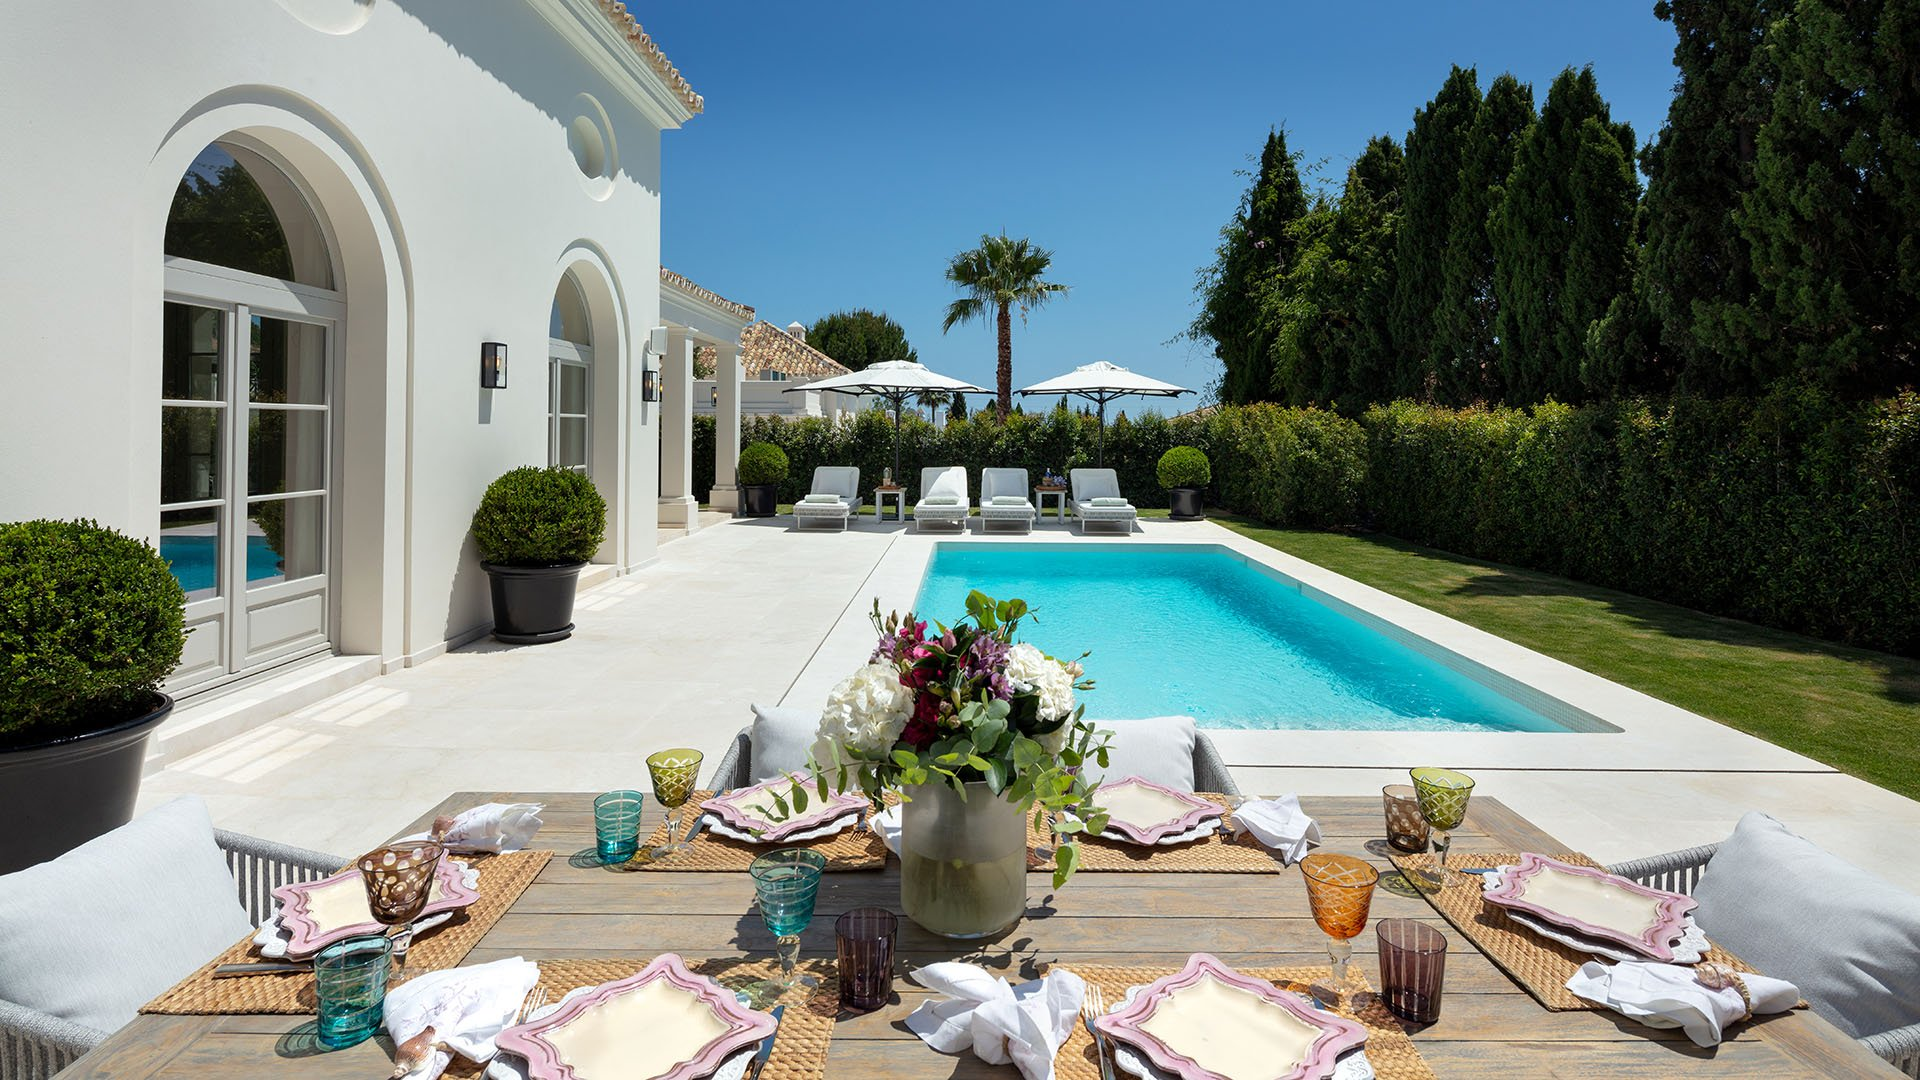 Villa Nagueles: French provincial style new build villa on the New Golden Mile in Marbella